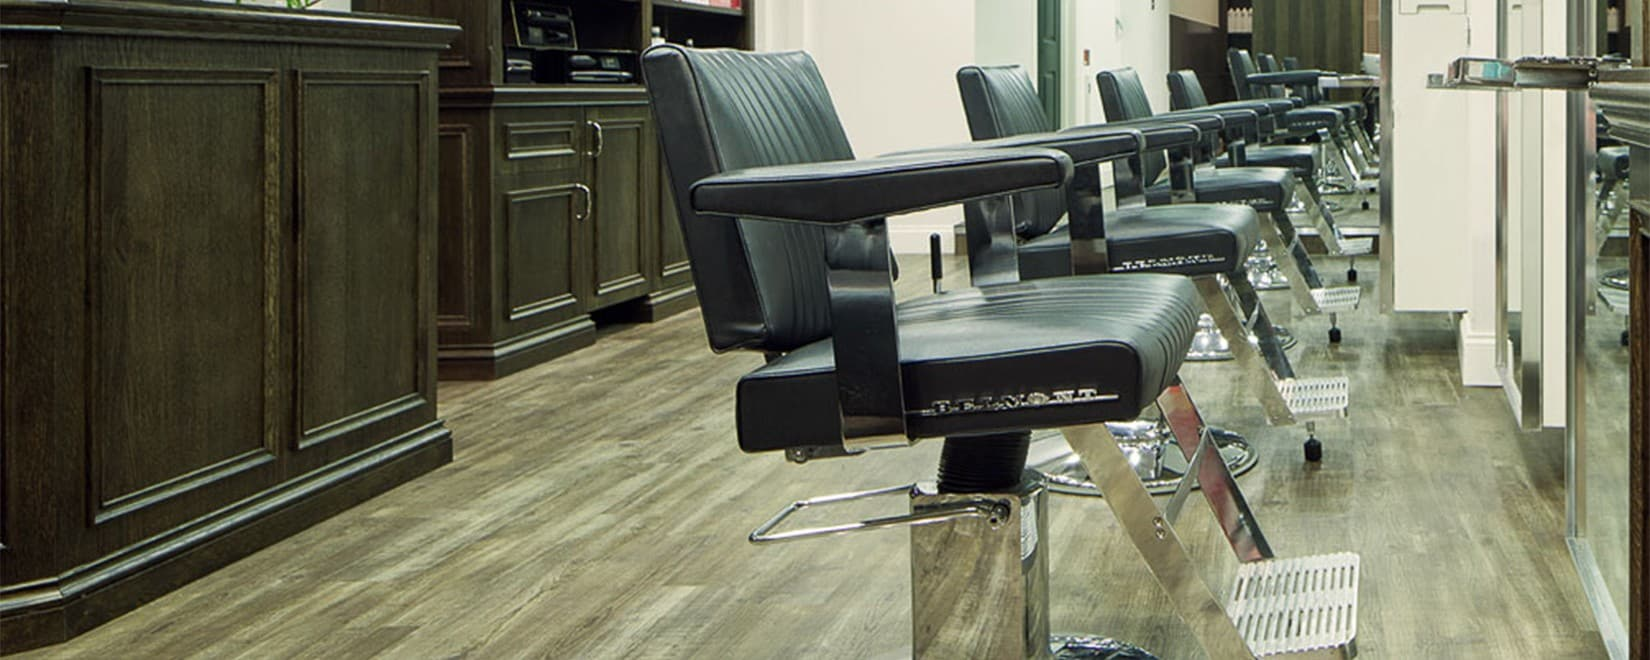 M Salons - Hairdressers Bishops Stortford - Interior Chair